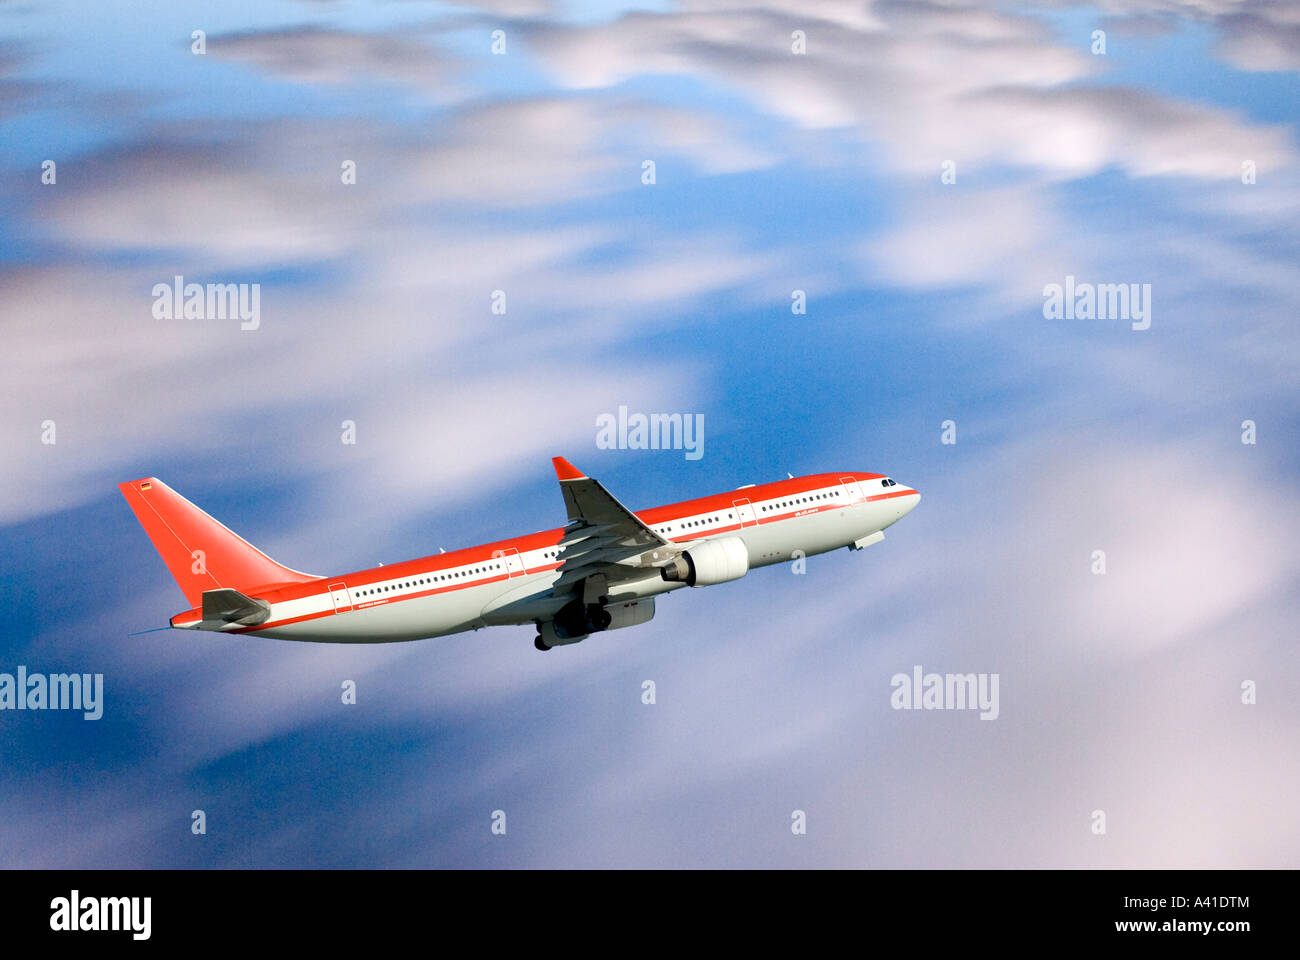 Plane Airbus A330 200 over Ocean Digitally altered - Stock Image